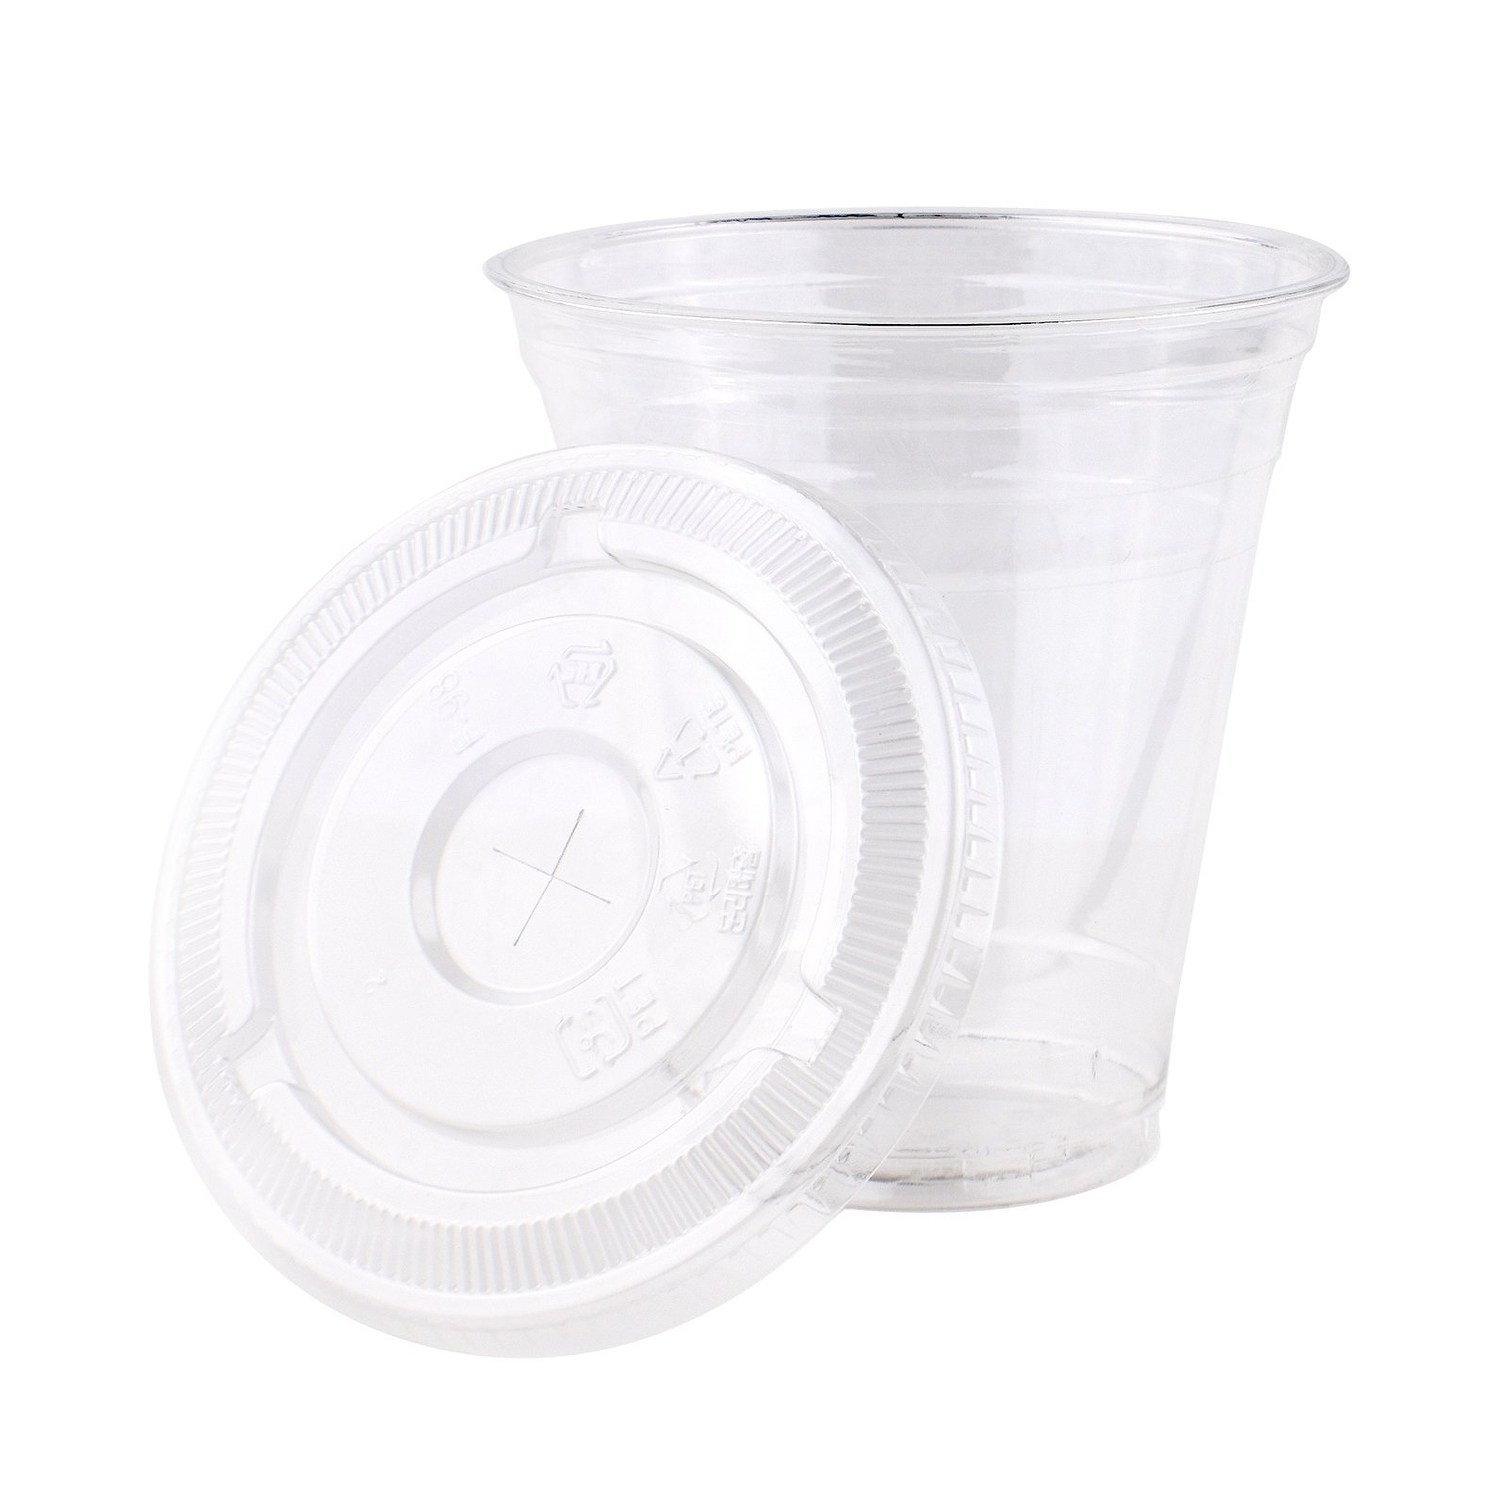 OTOR 16oz Clear Disposable Plastic Cups with Dome and Flat Lids 50 Count